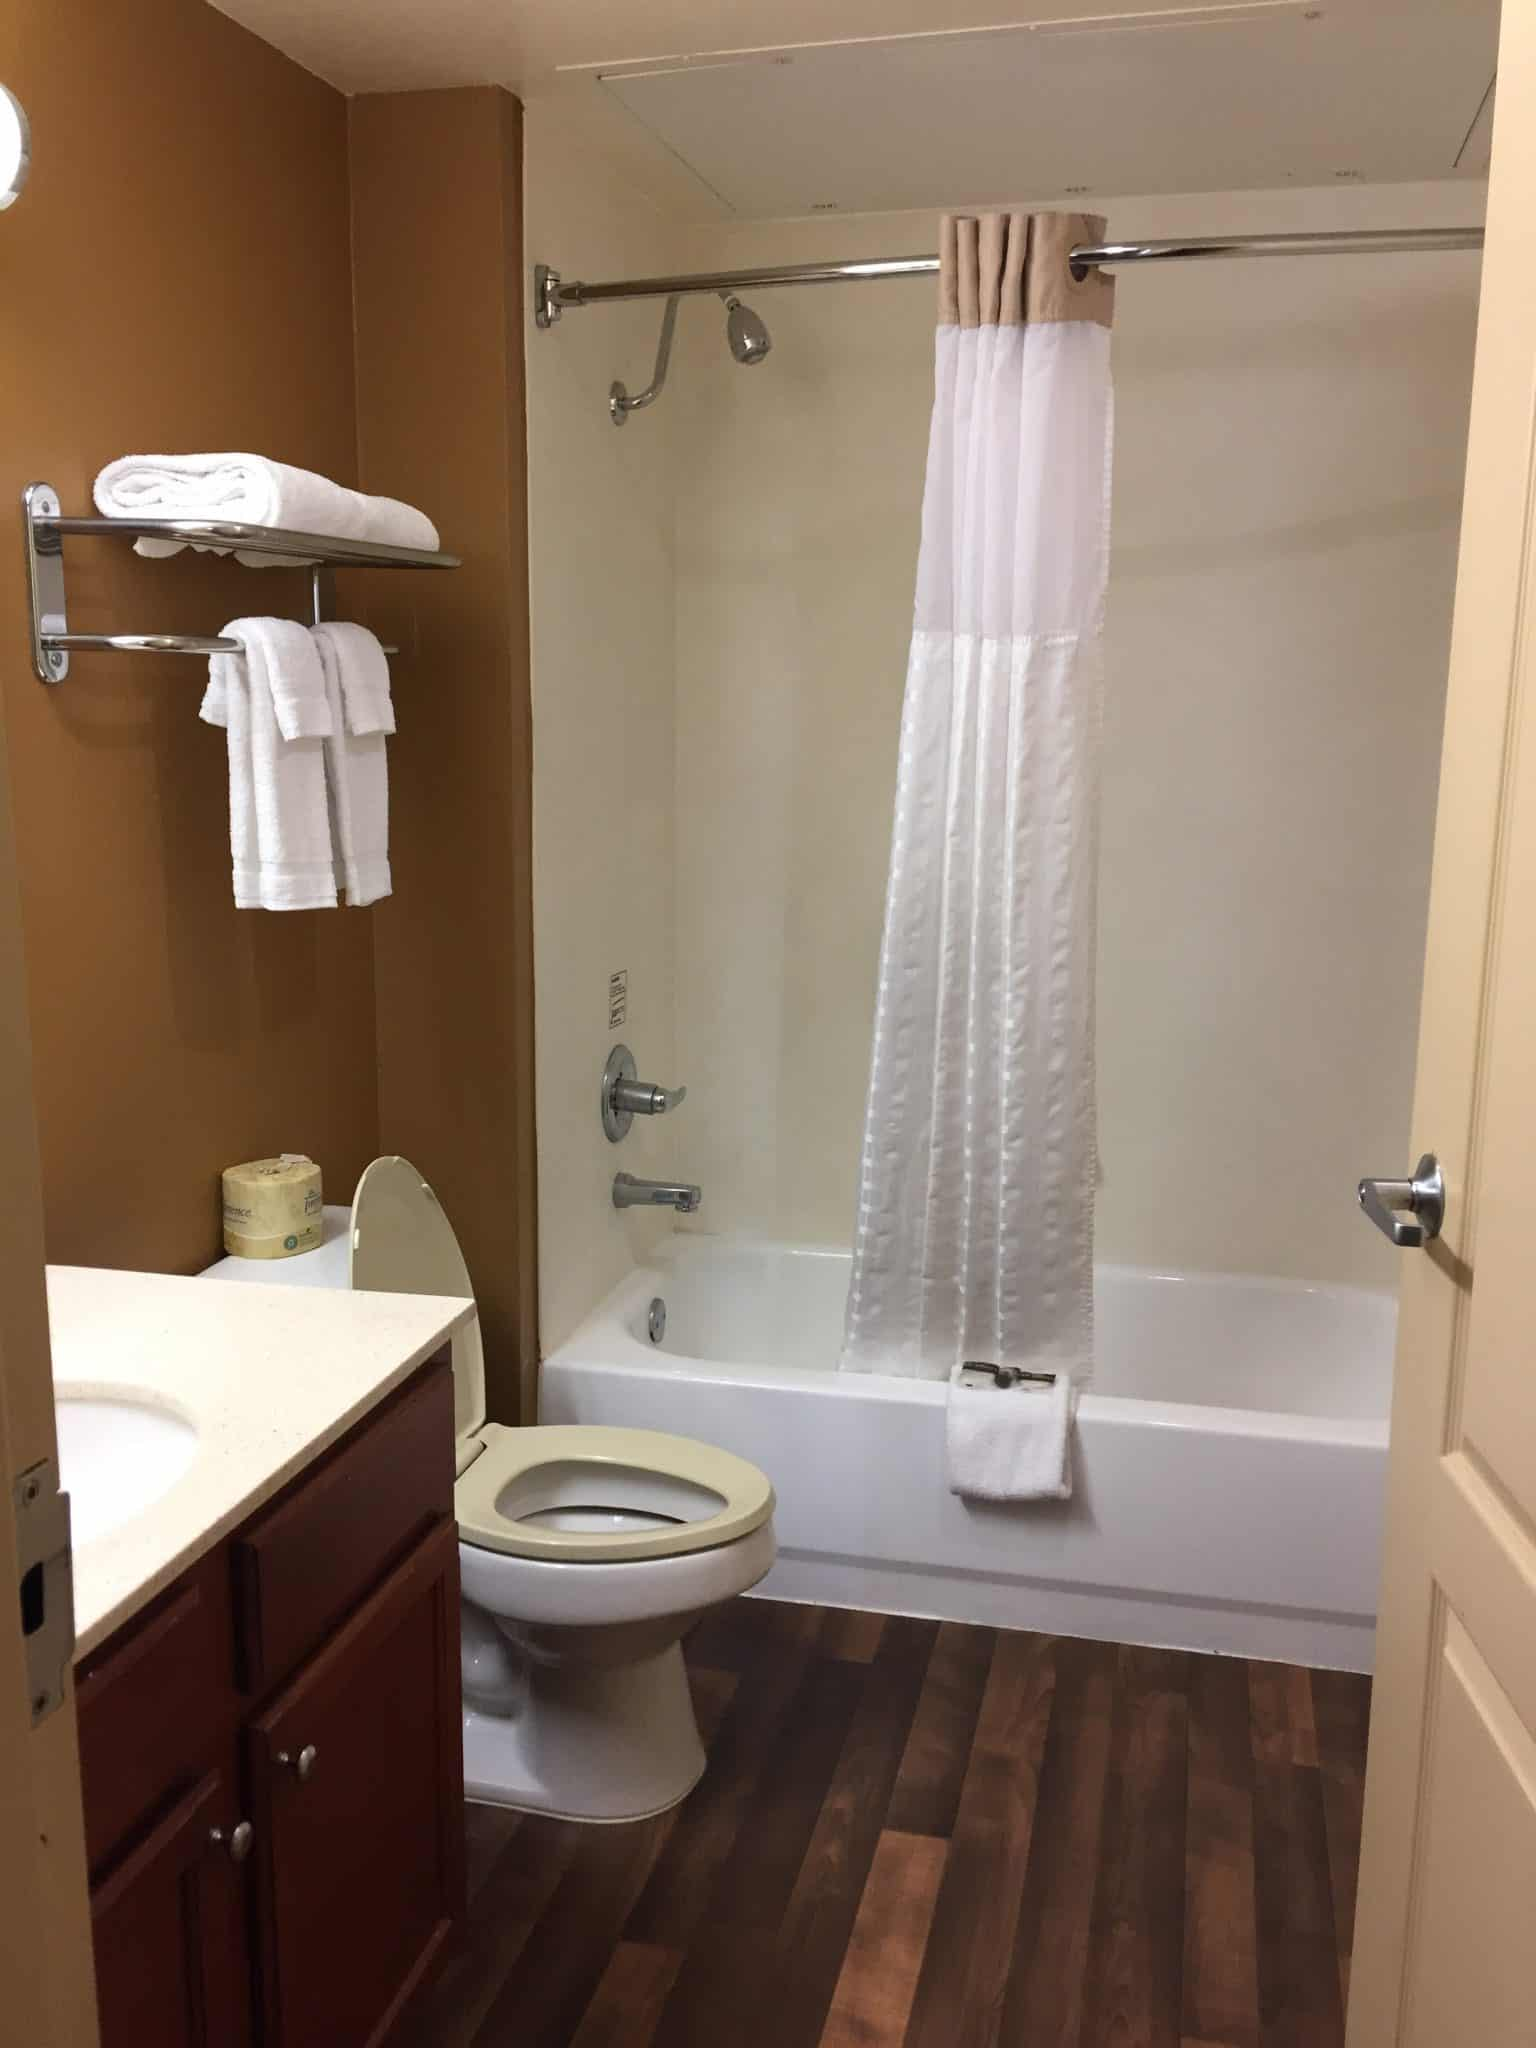 Extended Stay America for Family Friendly and Pet Friendly Travel bathroom